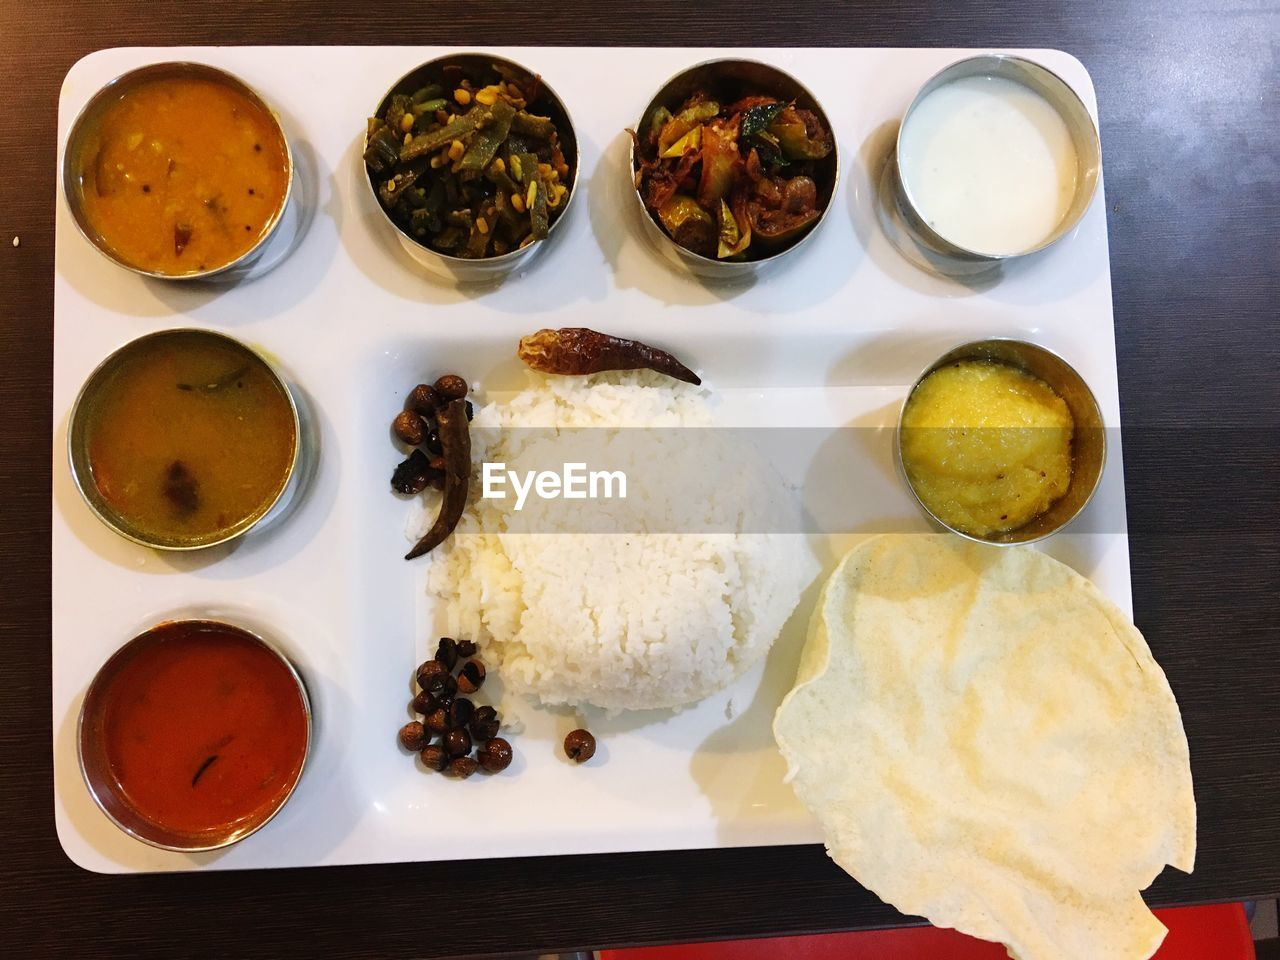 food and drink, food, ready-to-eat, freshness, plate, indoors, table, bowl, healthy eating, directly above, high angle view, no people, serving size, asian food, meal, rice - food staple, still life, wellbeing, sauce, condiment, savory sauce, tray, dip, temptation, japanese food, snack